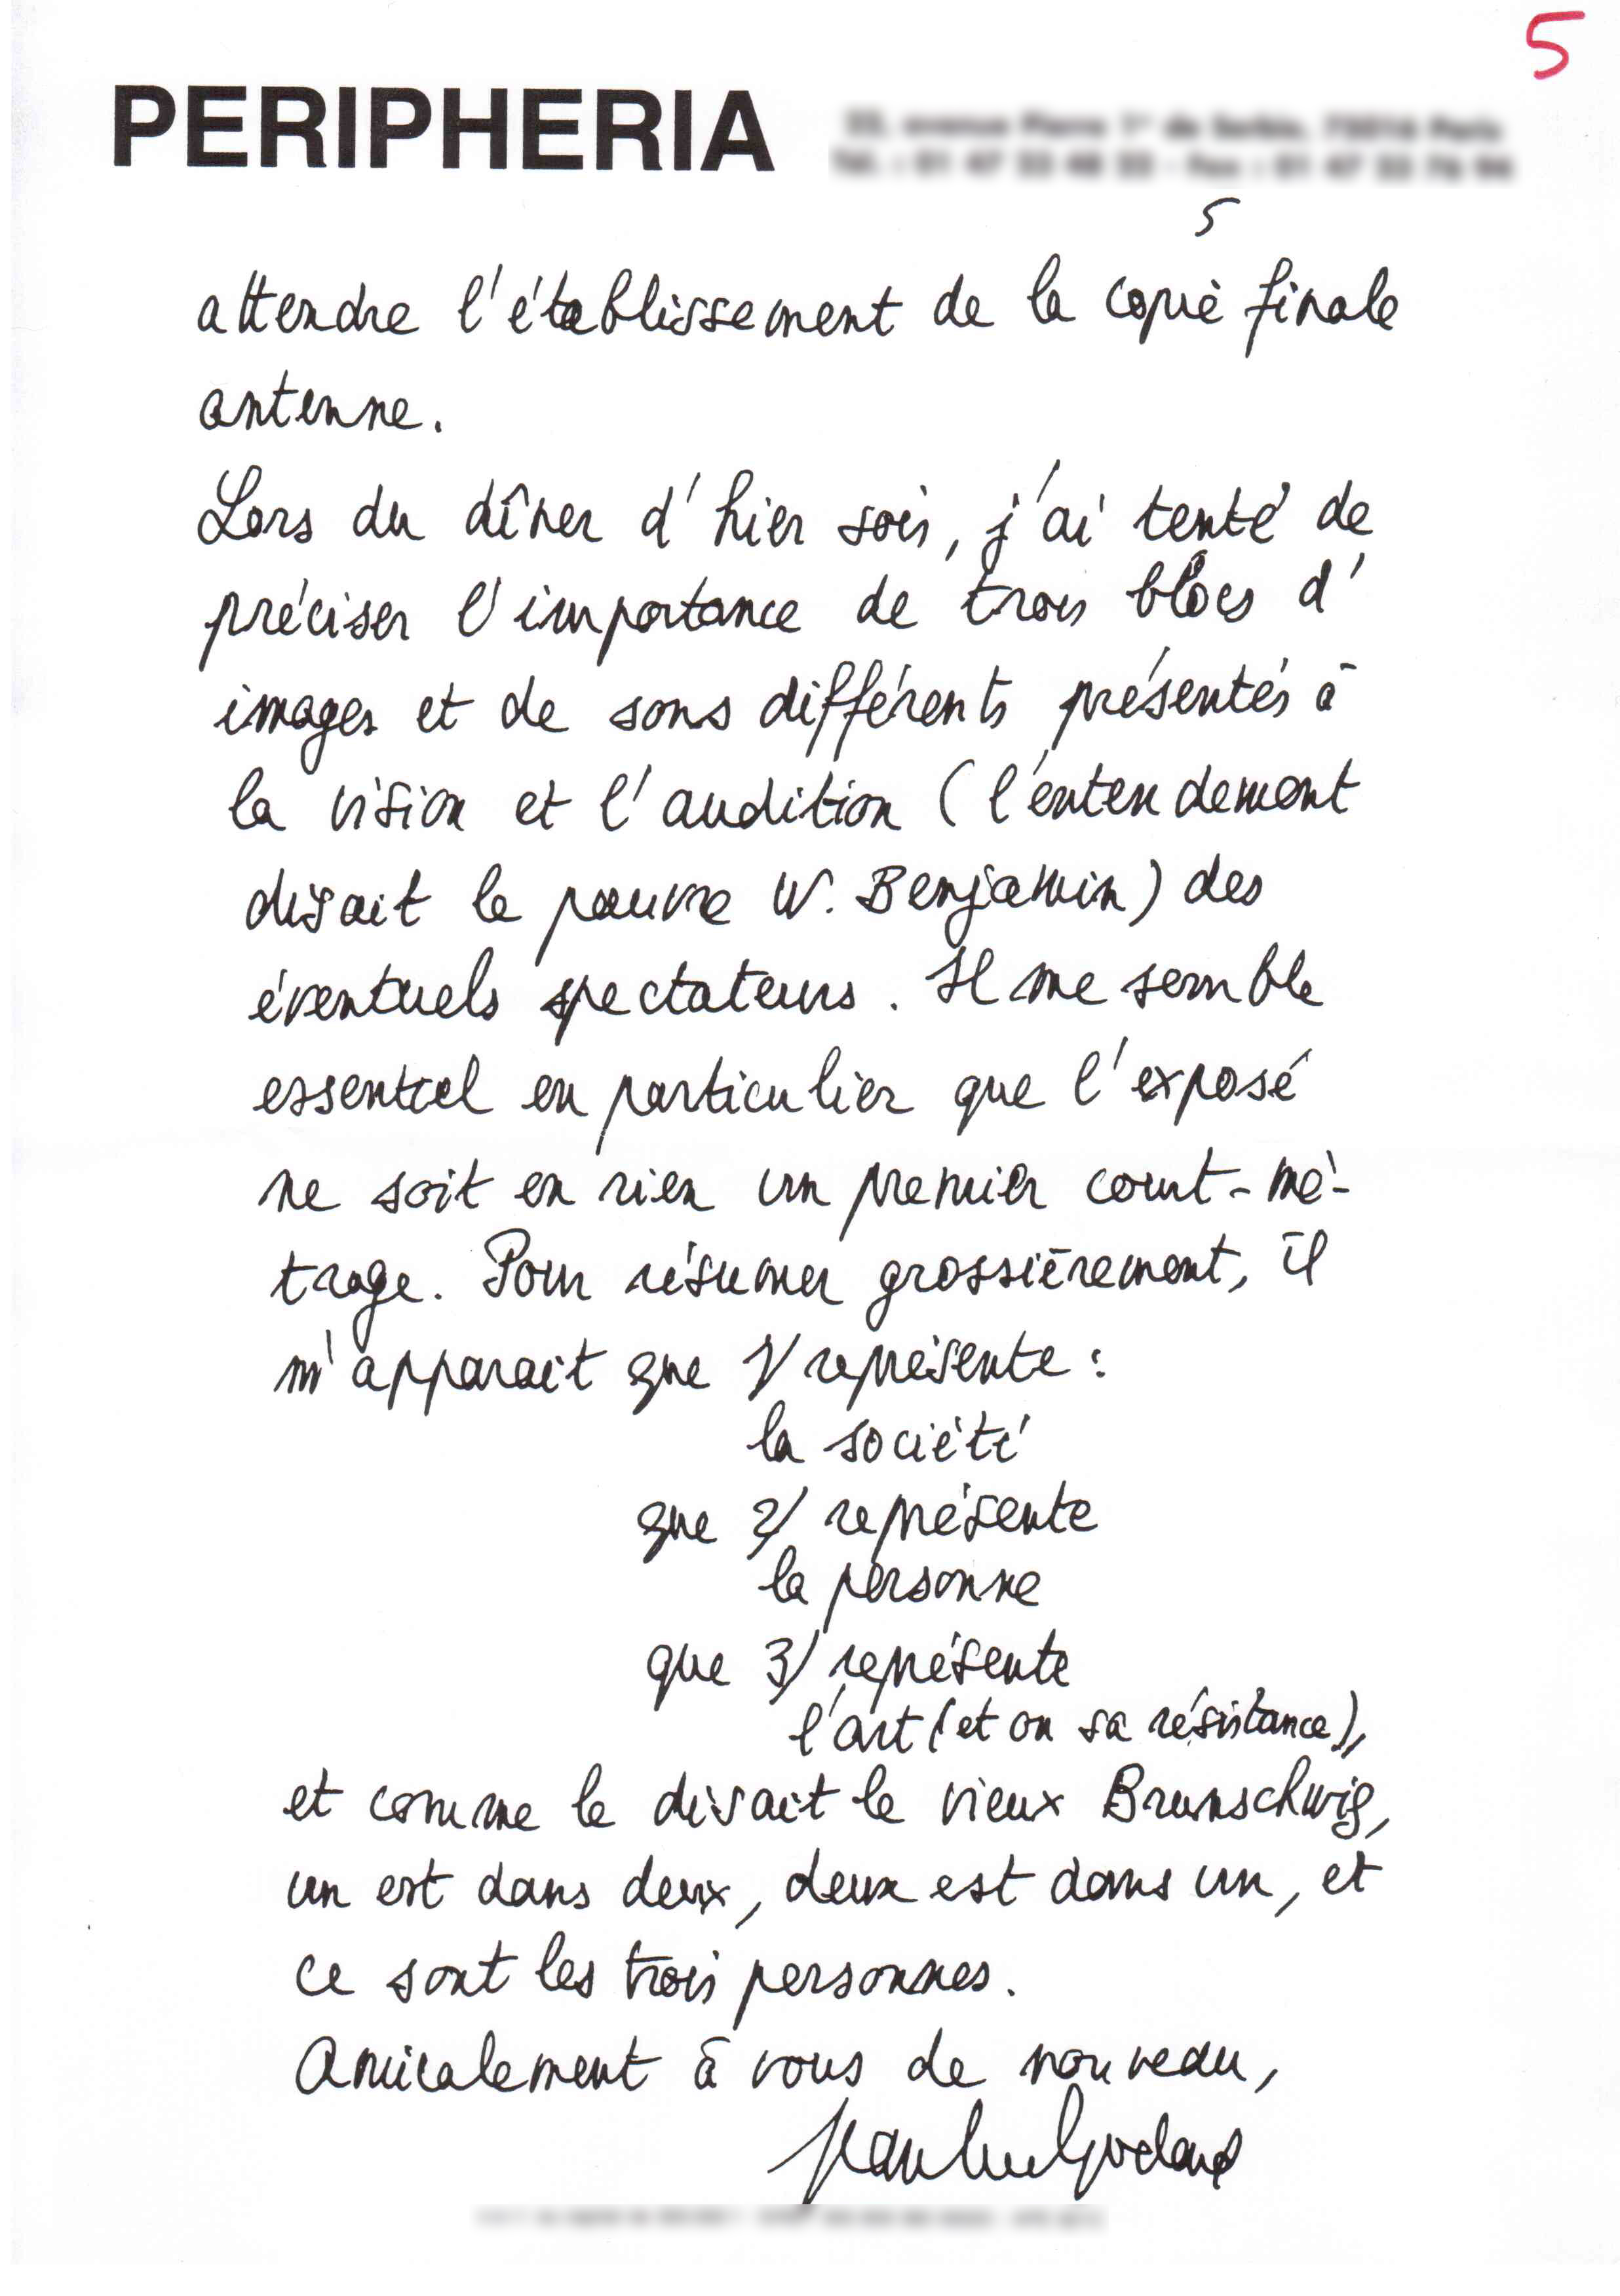 Document 4, partie 5